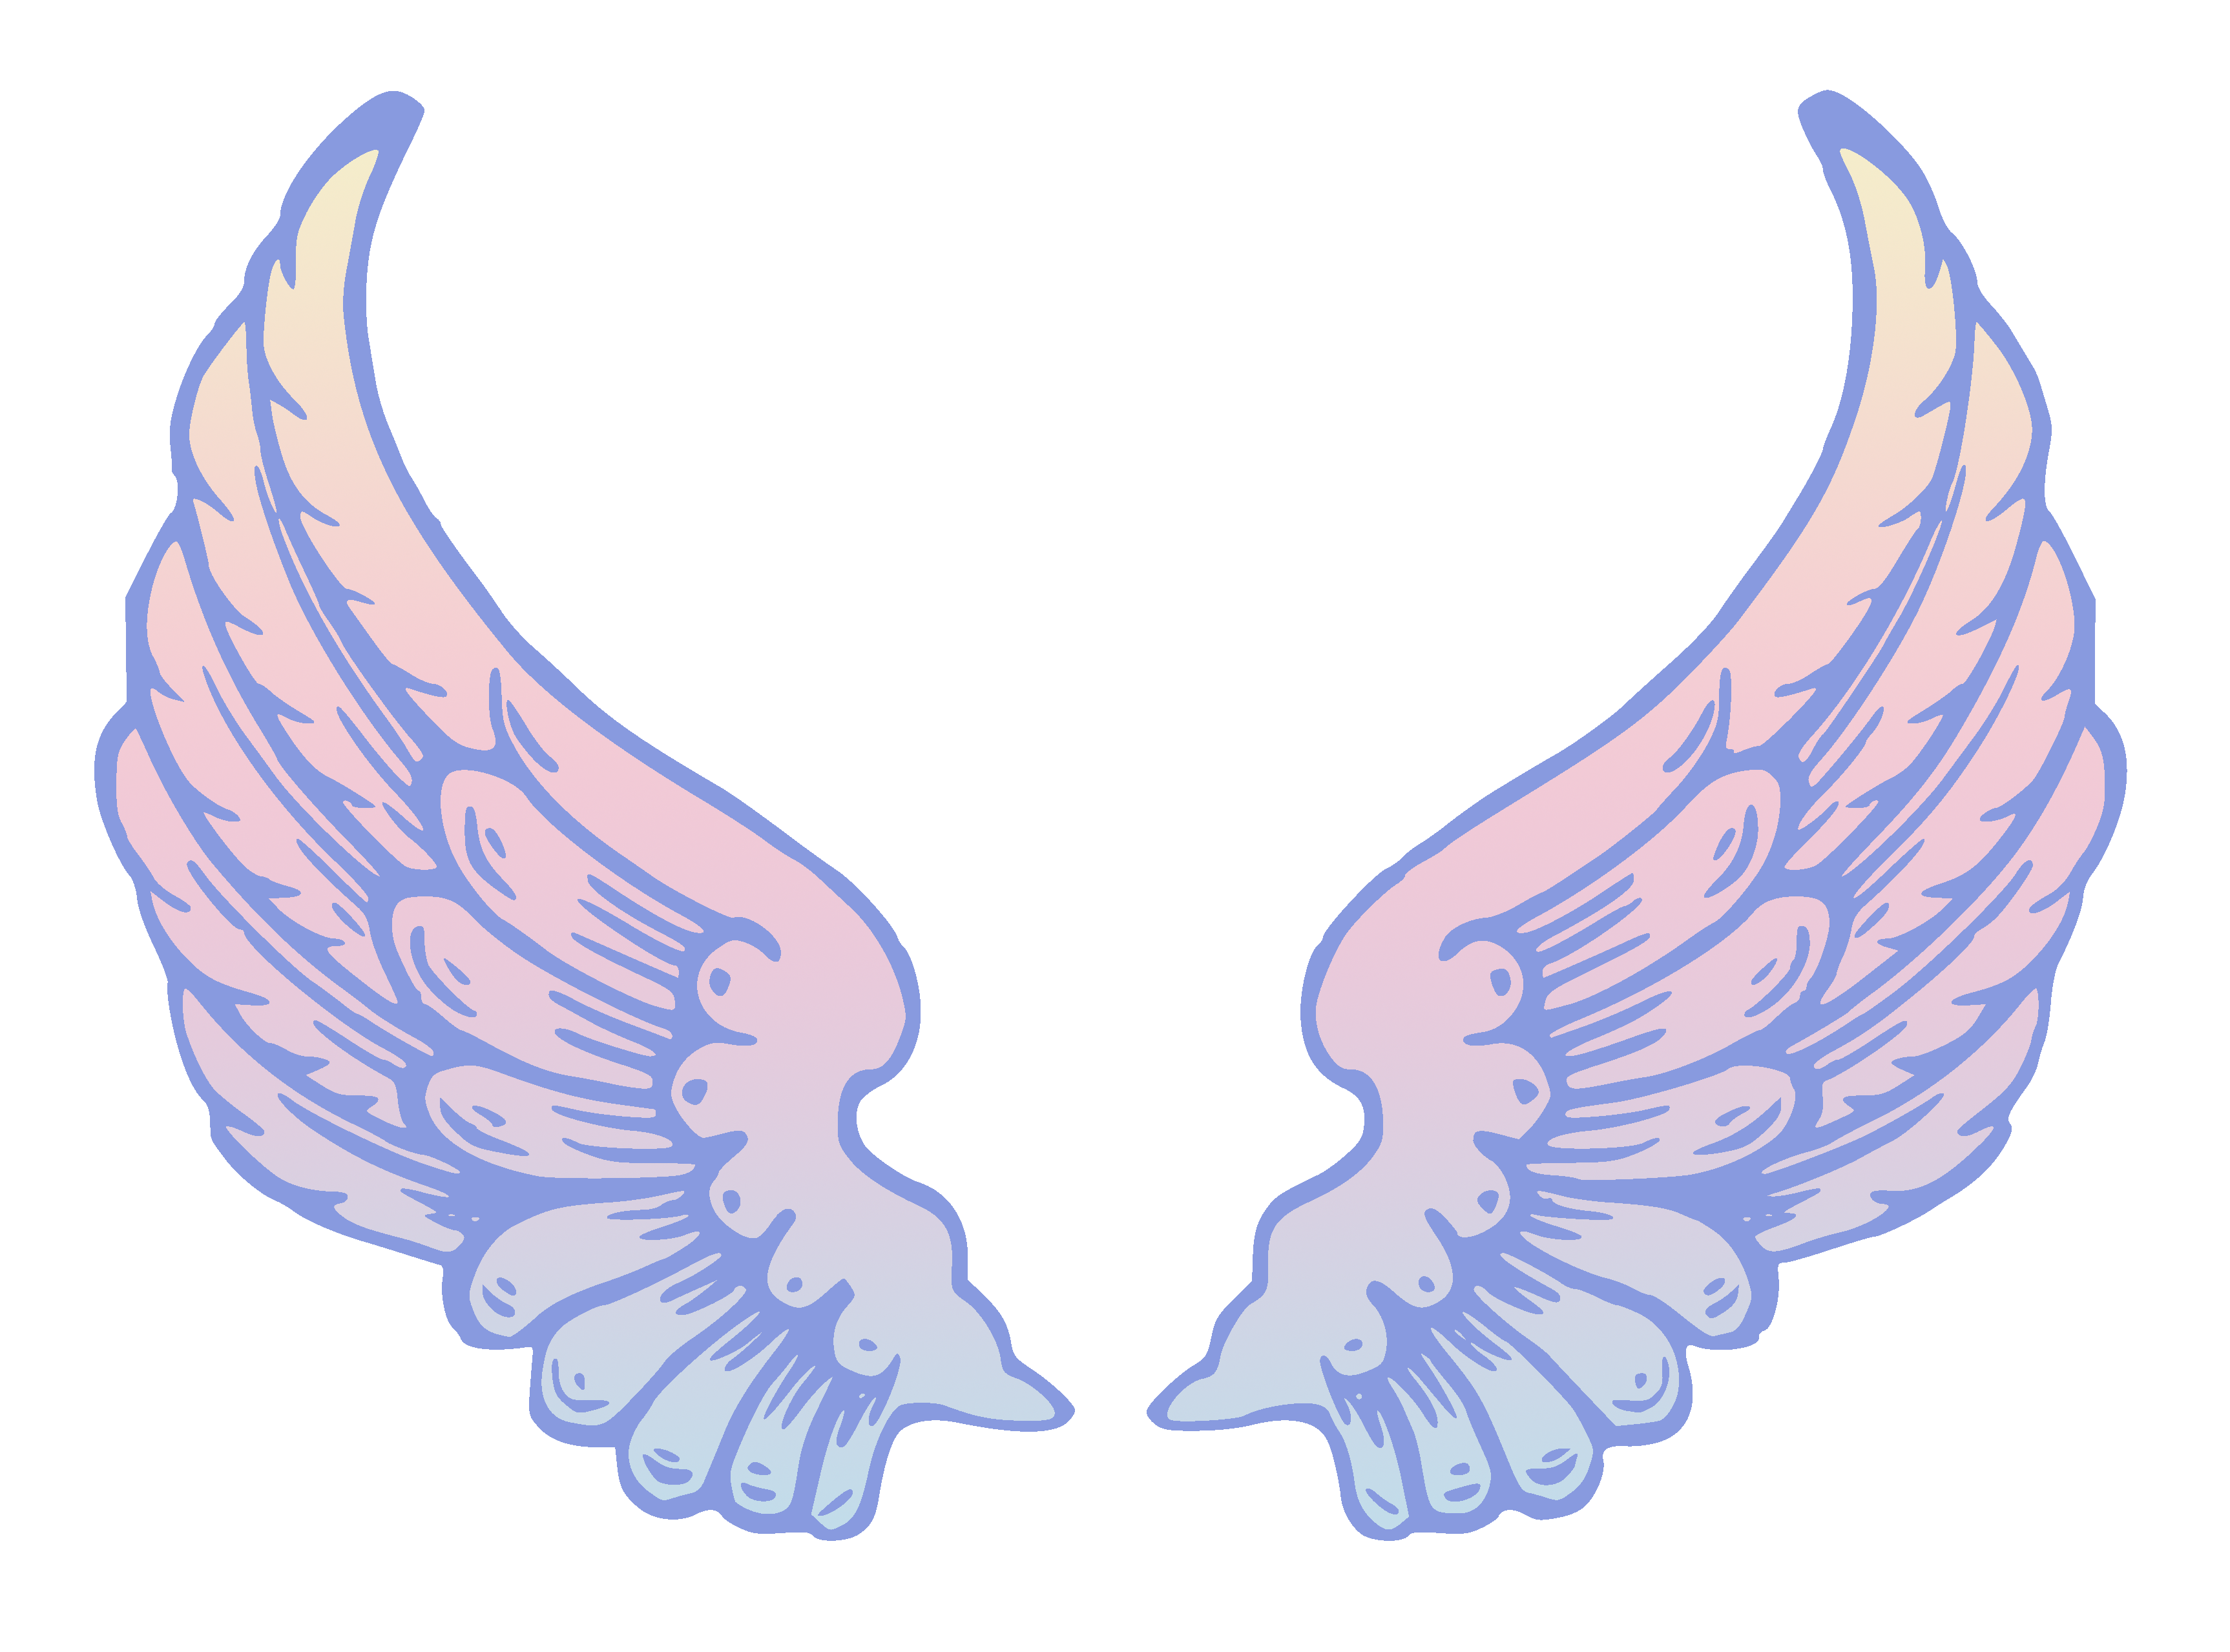 Public Domain Pastel Angel Wings.